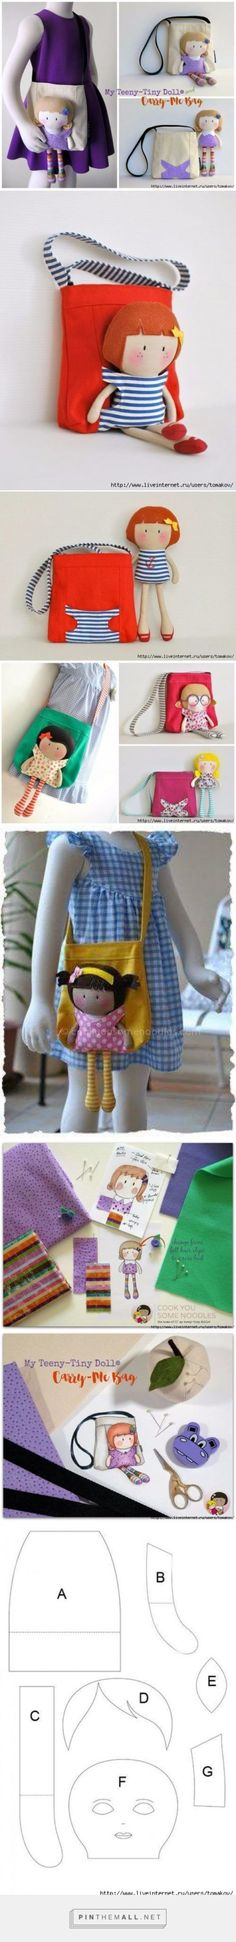 instructions to doll patterns Oyuncak bez bebek yapmak ablonlu anlatm olarak bu yazmda yer alyor. Sizde ok gzel ve elenceli Sewing For Kids, Diy For Kids, Basic Sewing, Doll Patterns, Sewing Patterns, Sewing Crafts, Sewing Projects, Sewing Ideas, Diy Crafts